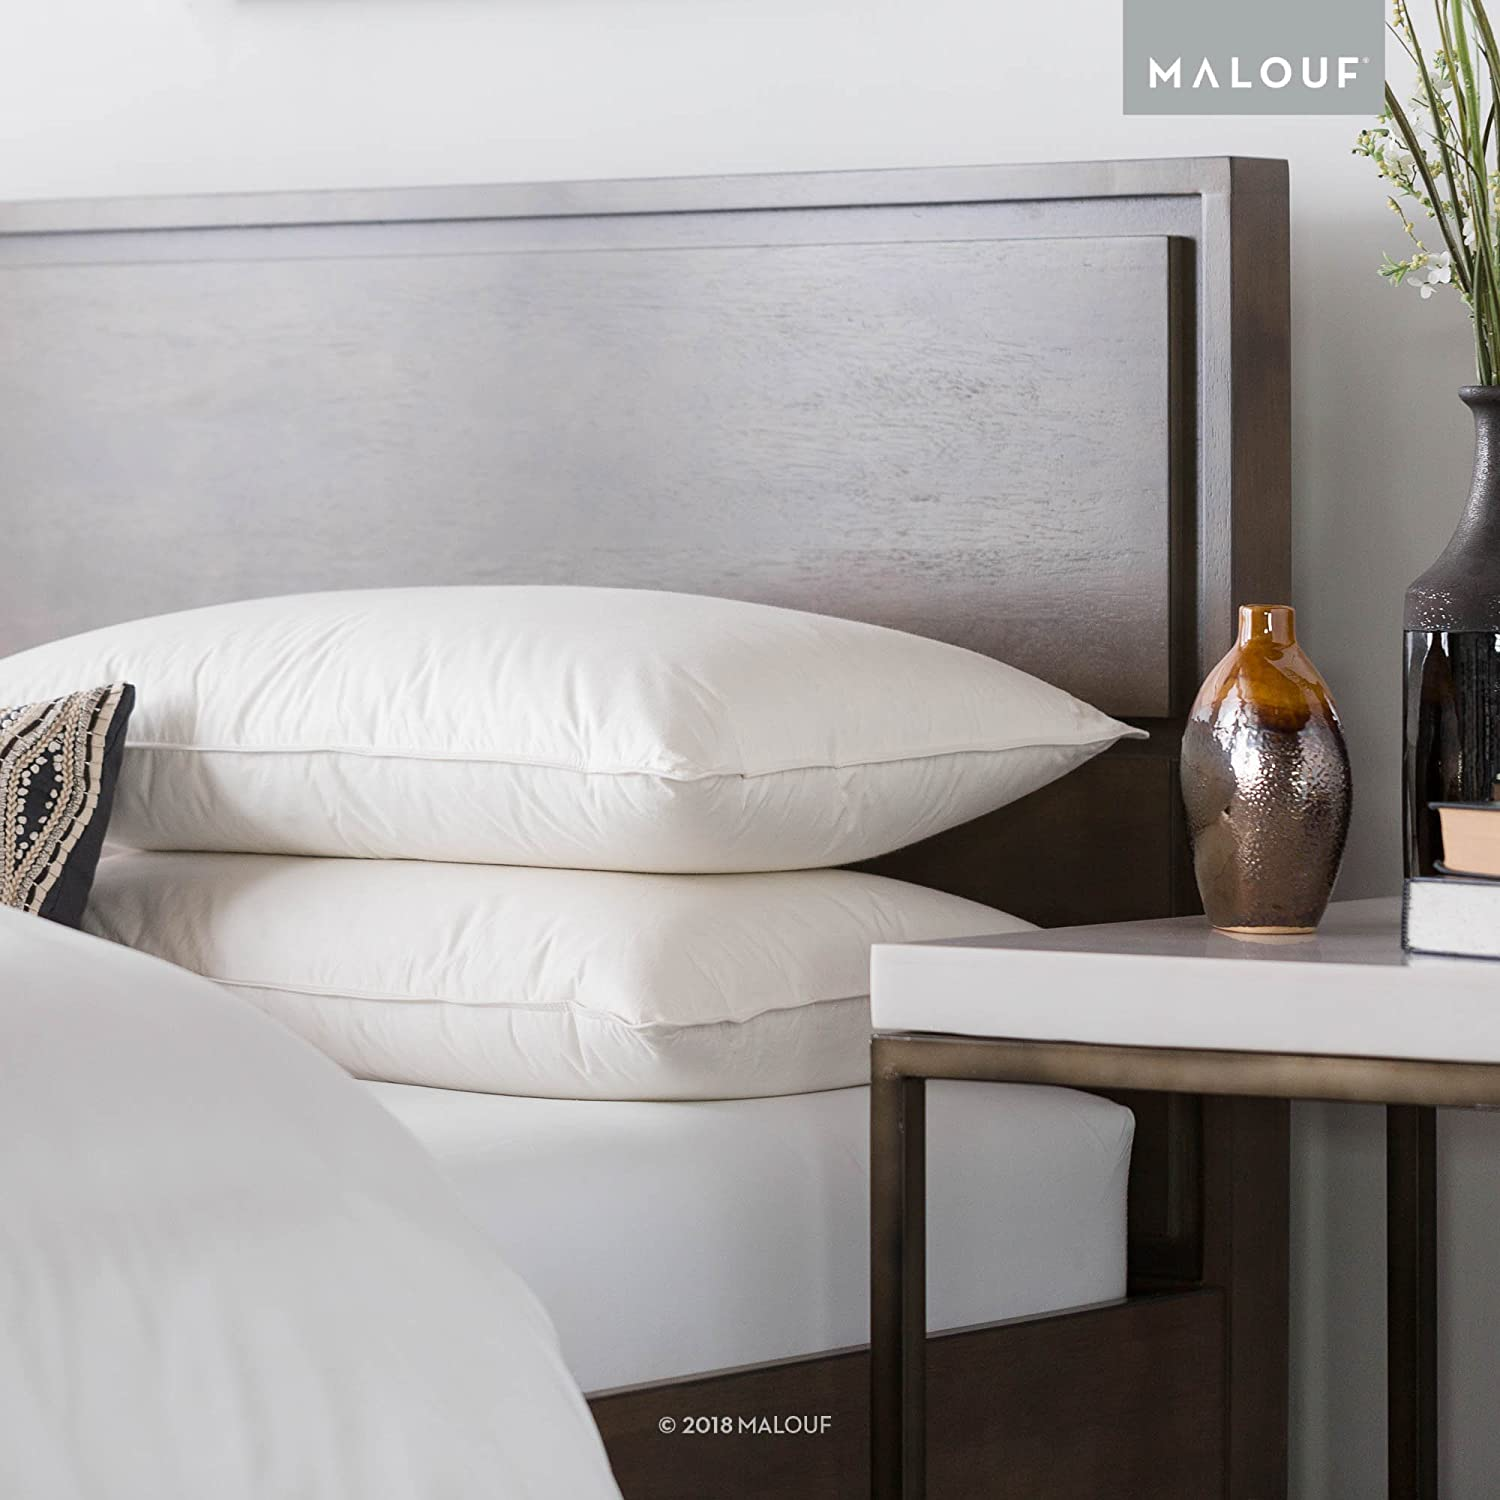 MALOUF Z TRIPLELAYER Down Pillow - 90 Percent Down Top and Bottom Layers - Inner Support Core - 100 Percent Natural Undyed Cotton Percale Cover - Responsibly Harvested - King high-quality